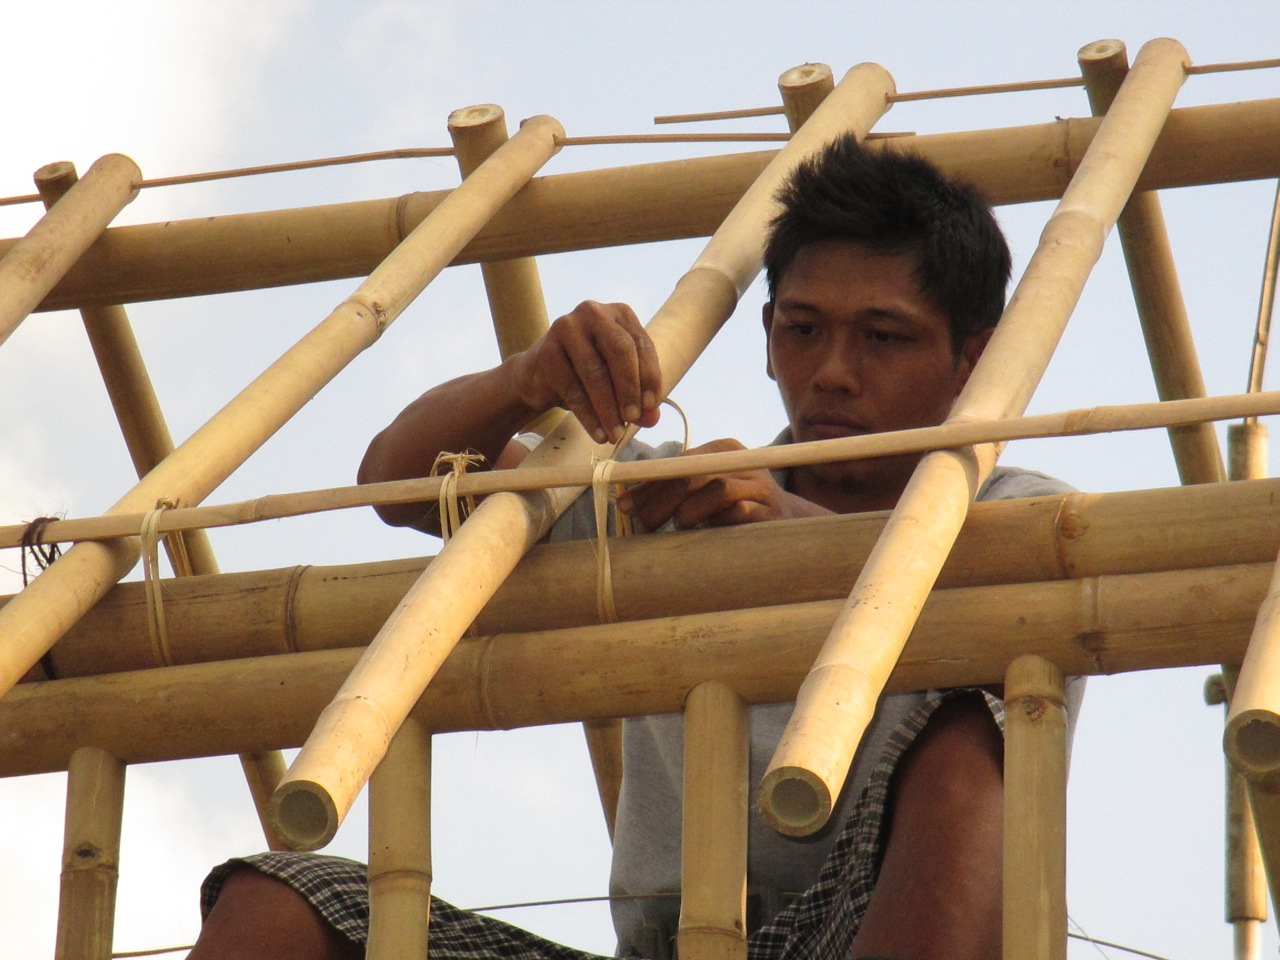 100% bamboo structure